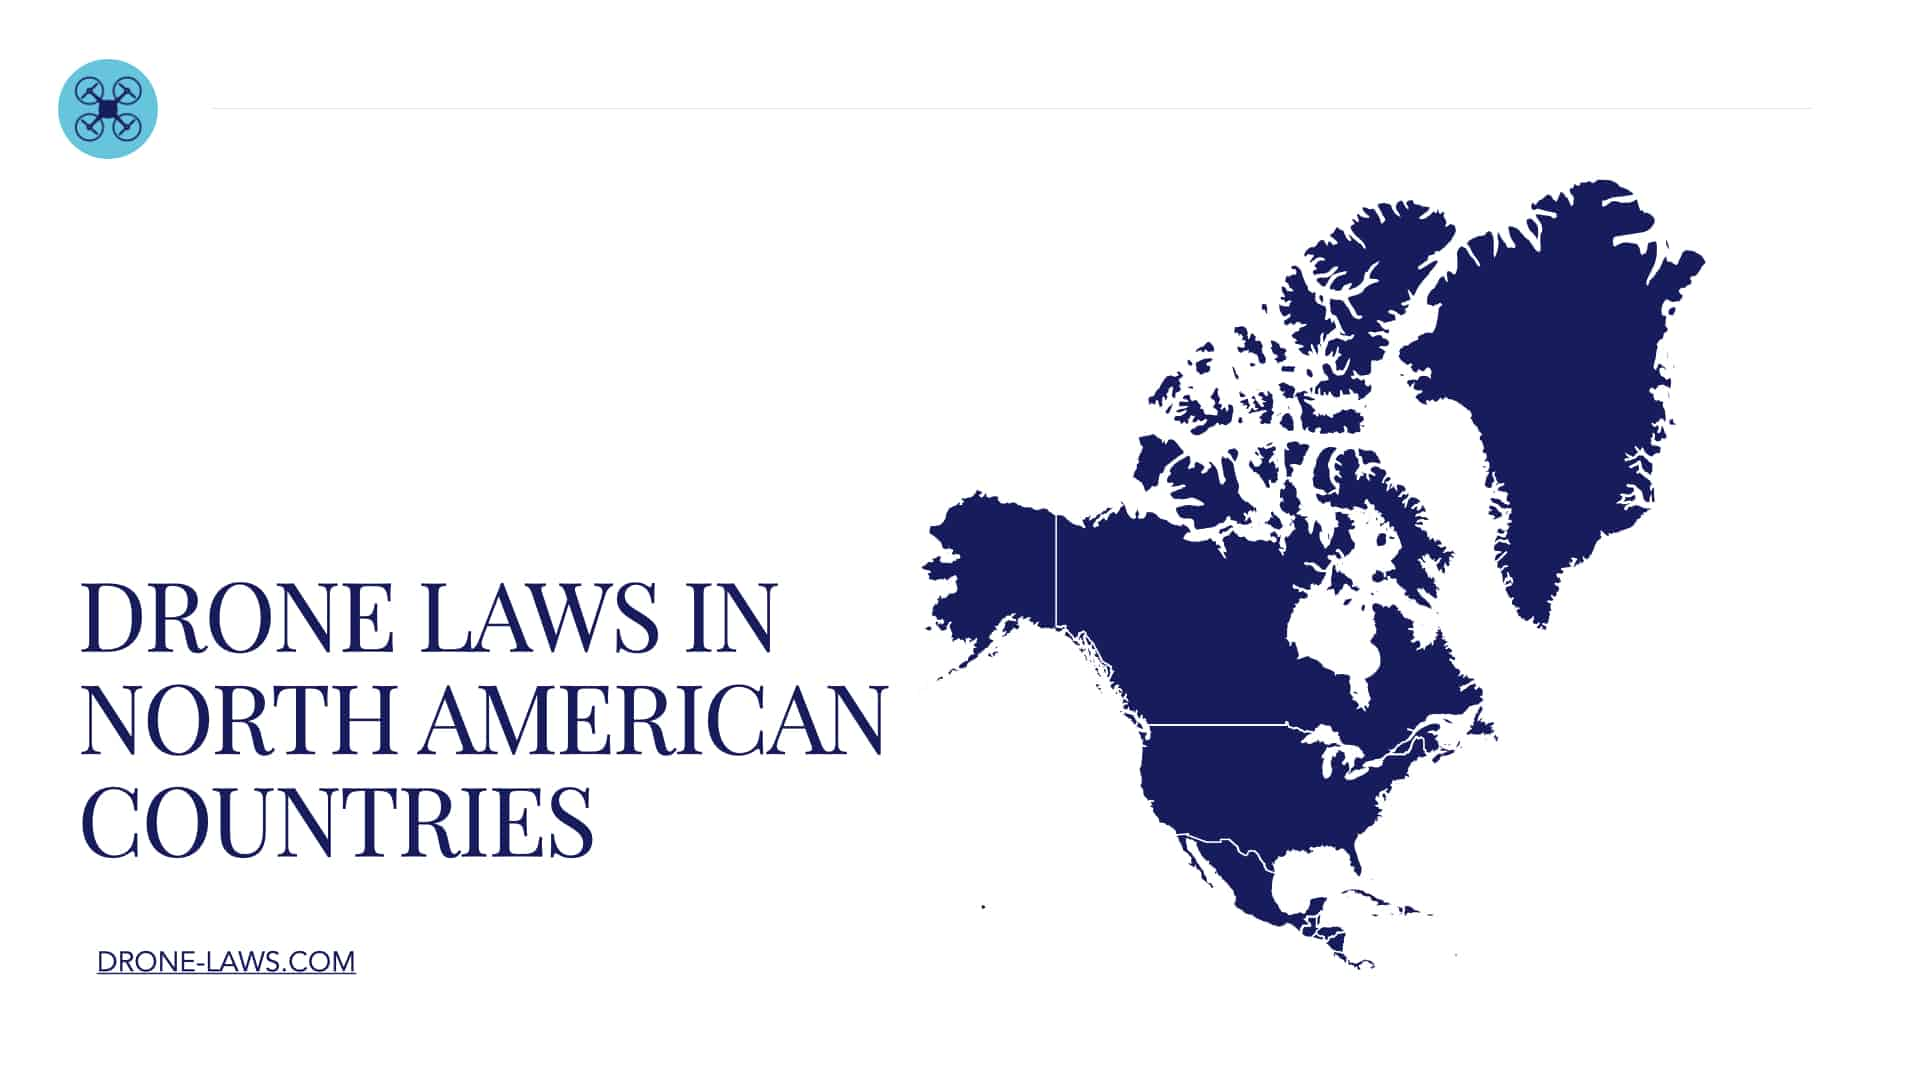 Drone Laws in North American Countries